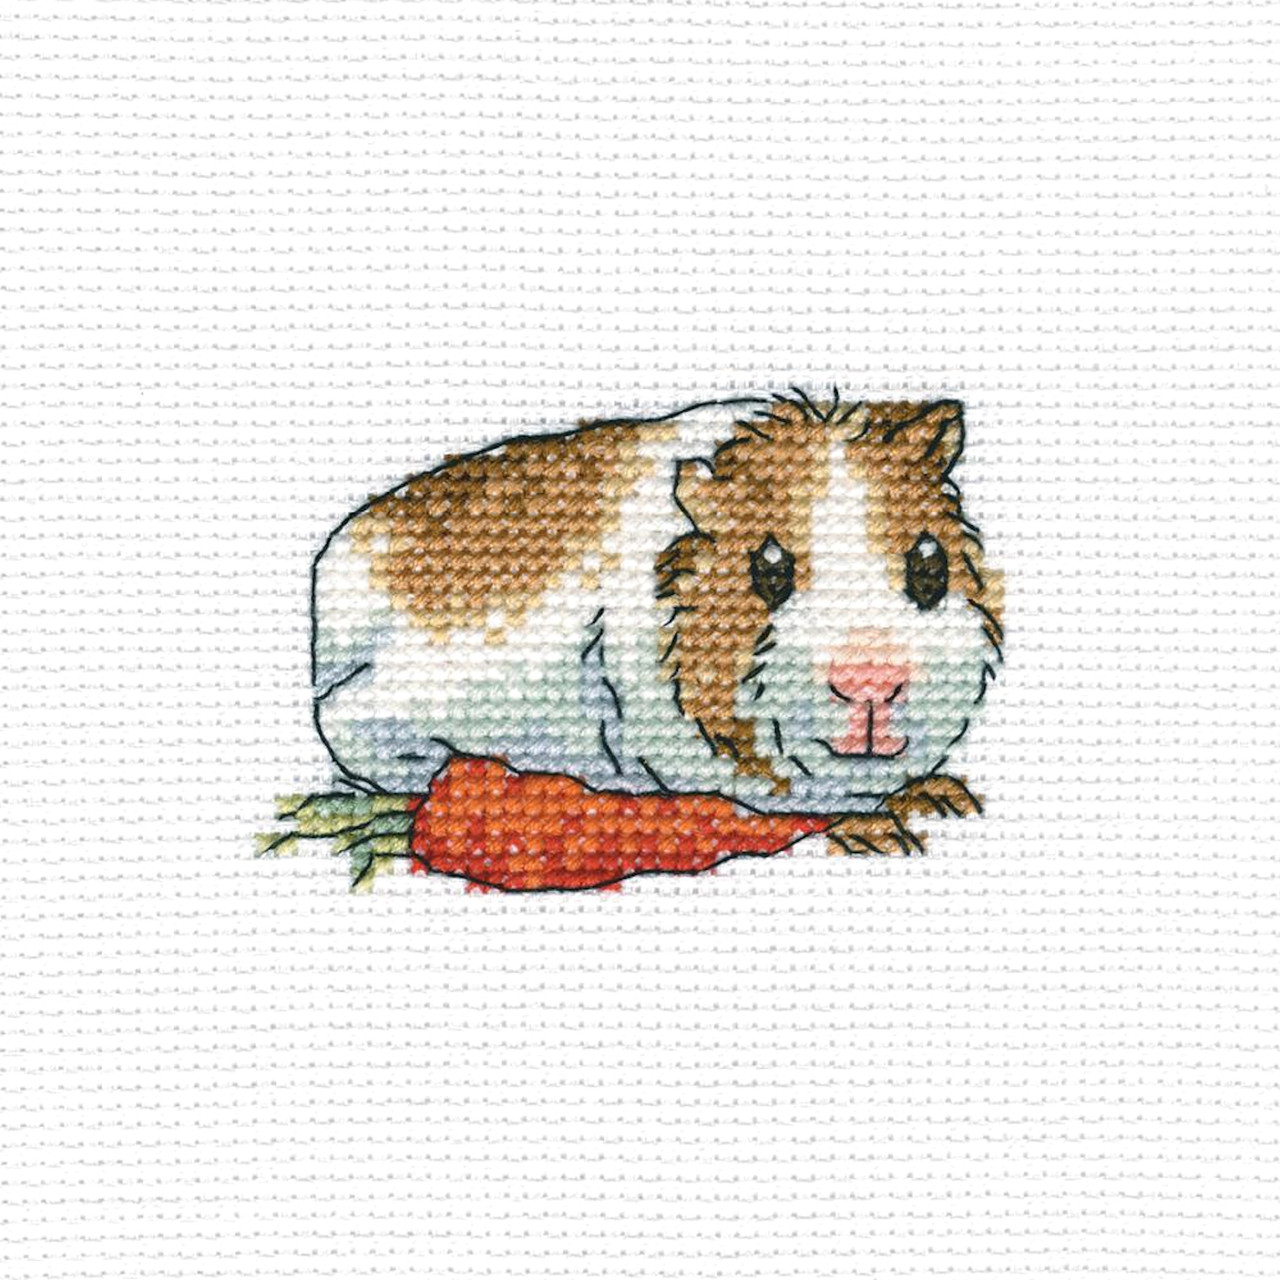 RTO - Cavy with Carrot